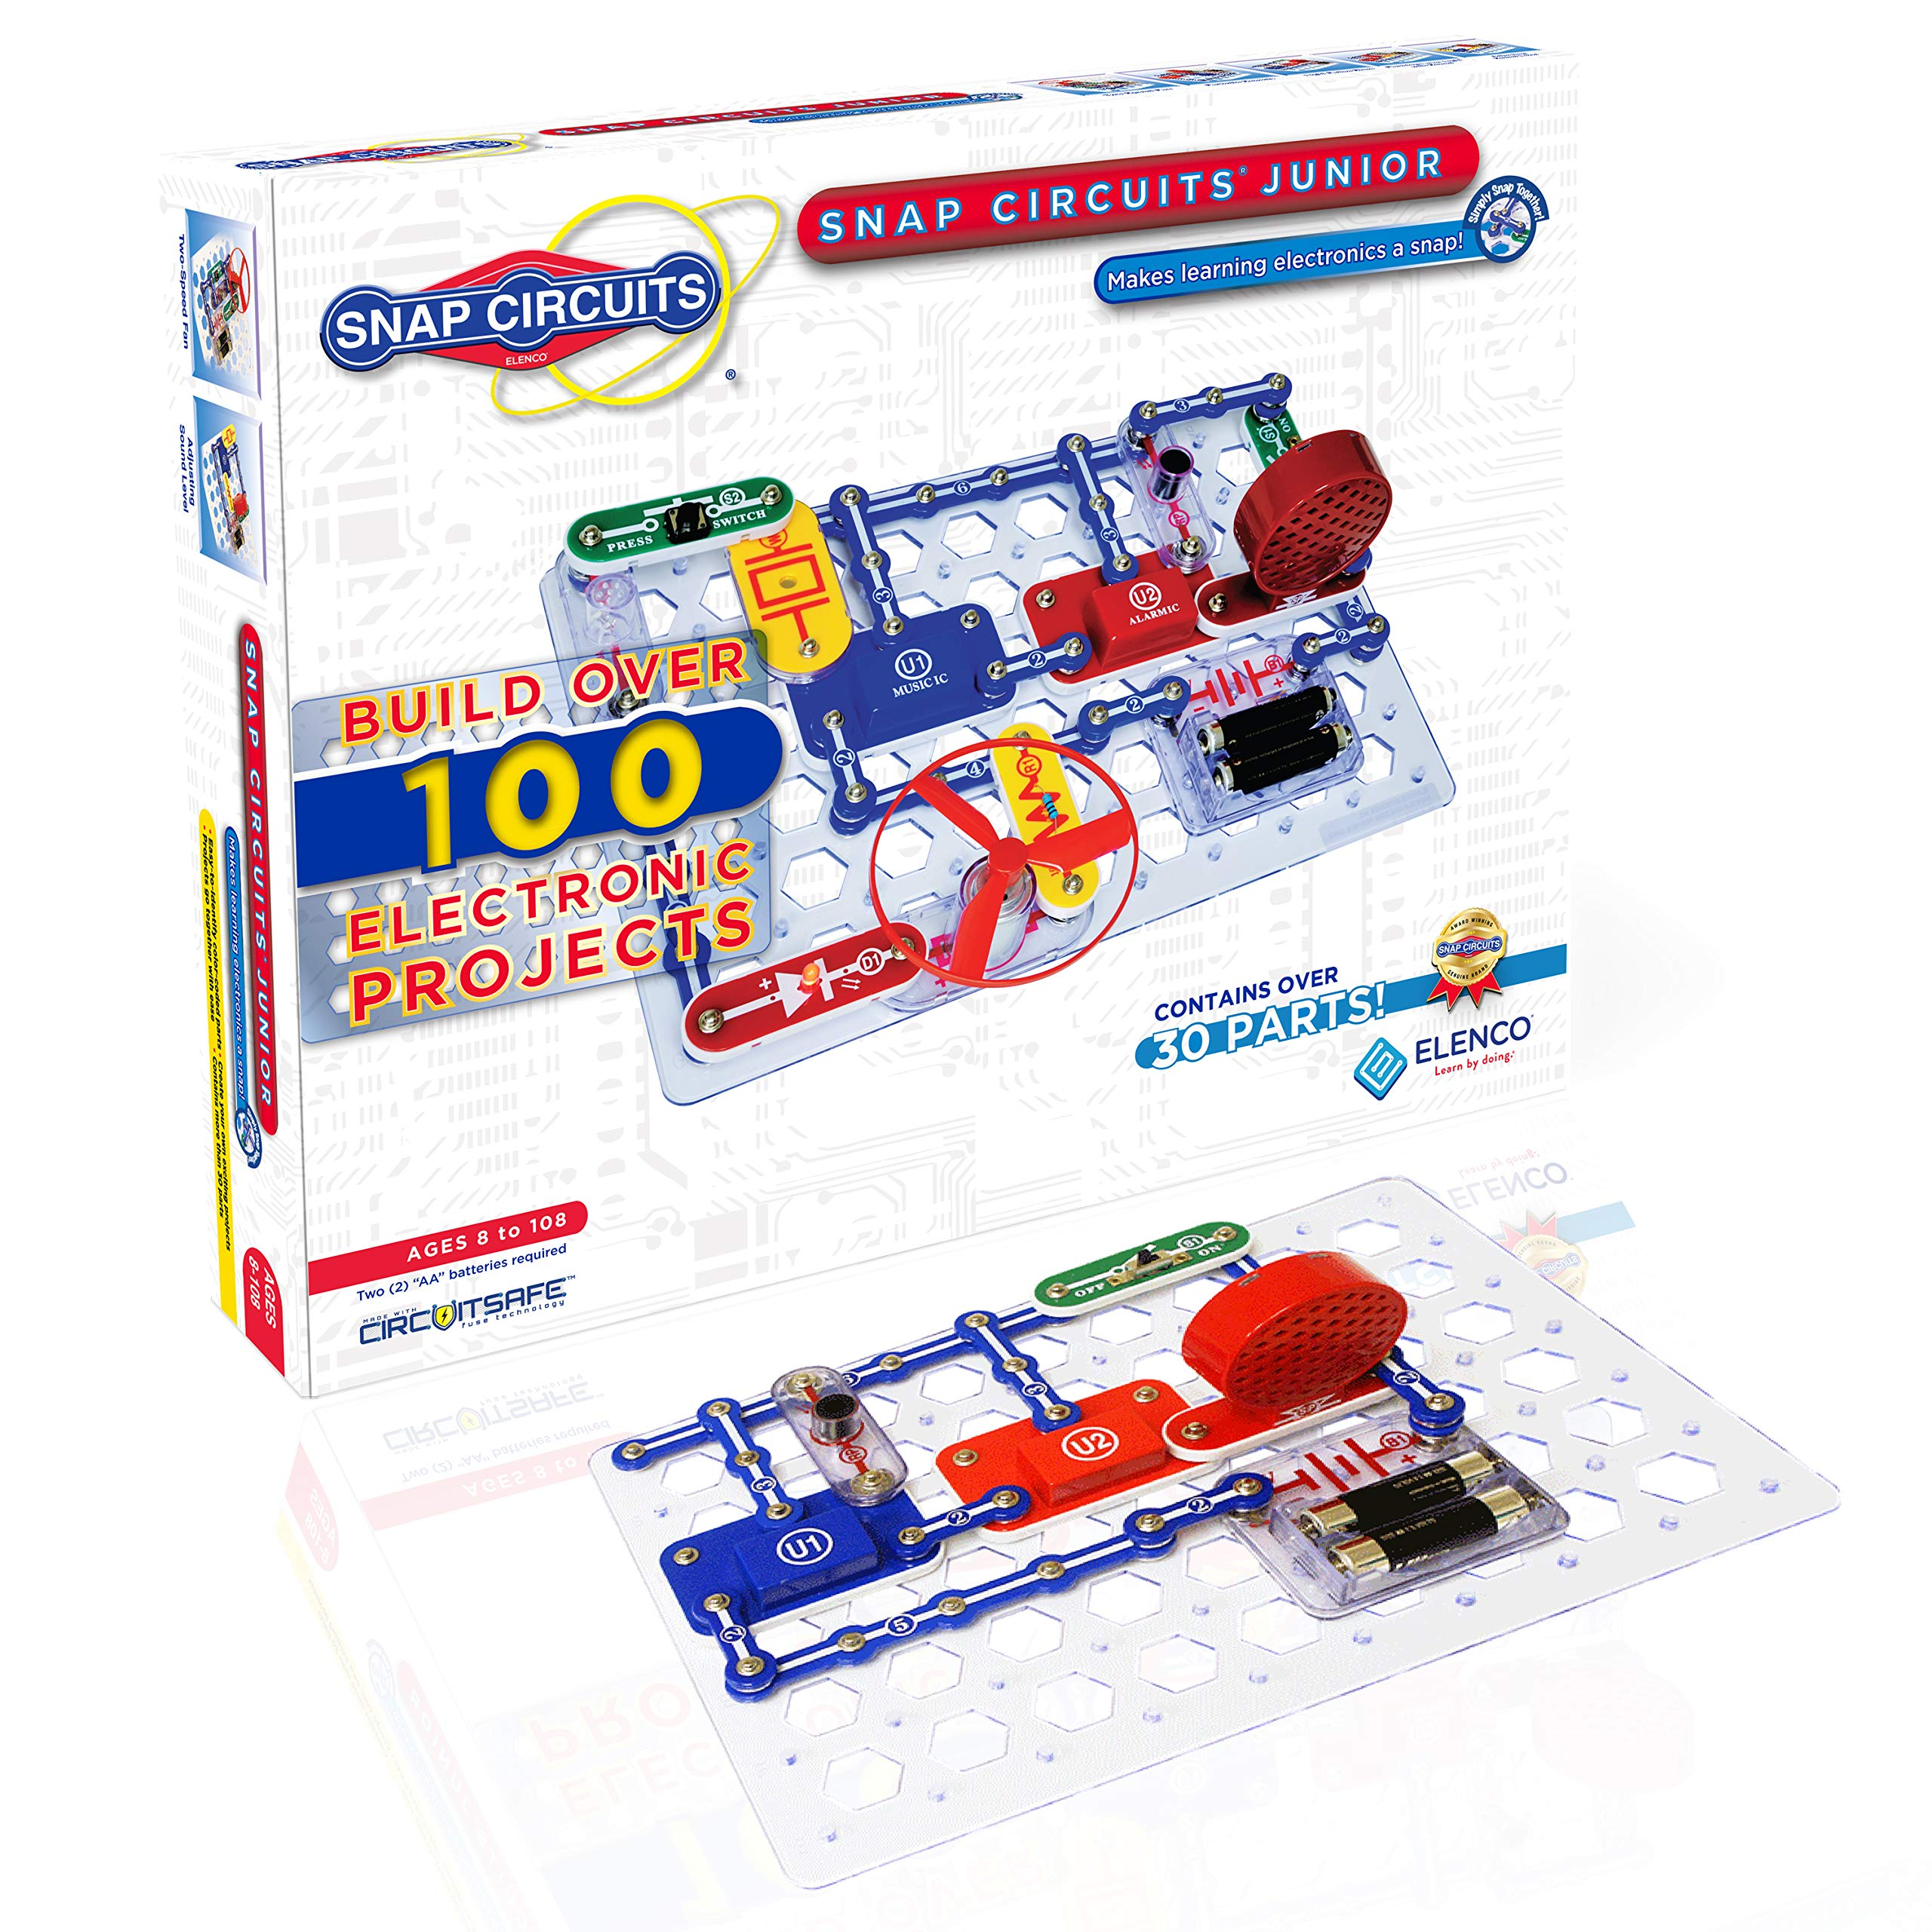 Snap Circuits Jr. SC-100 Electronics Exploration Kit | Over 100 Projects | Full Color Project Manual | 30+ Snap Circuit Parts | STEM Educational Toy For Kids 8+ by Snap Circuits